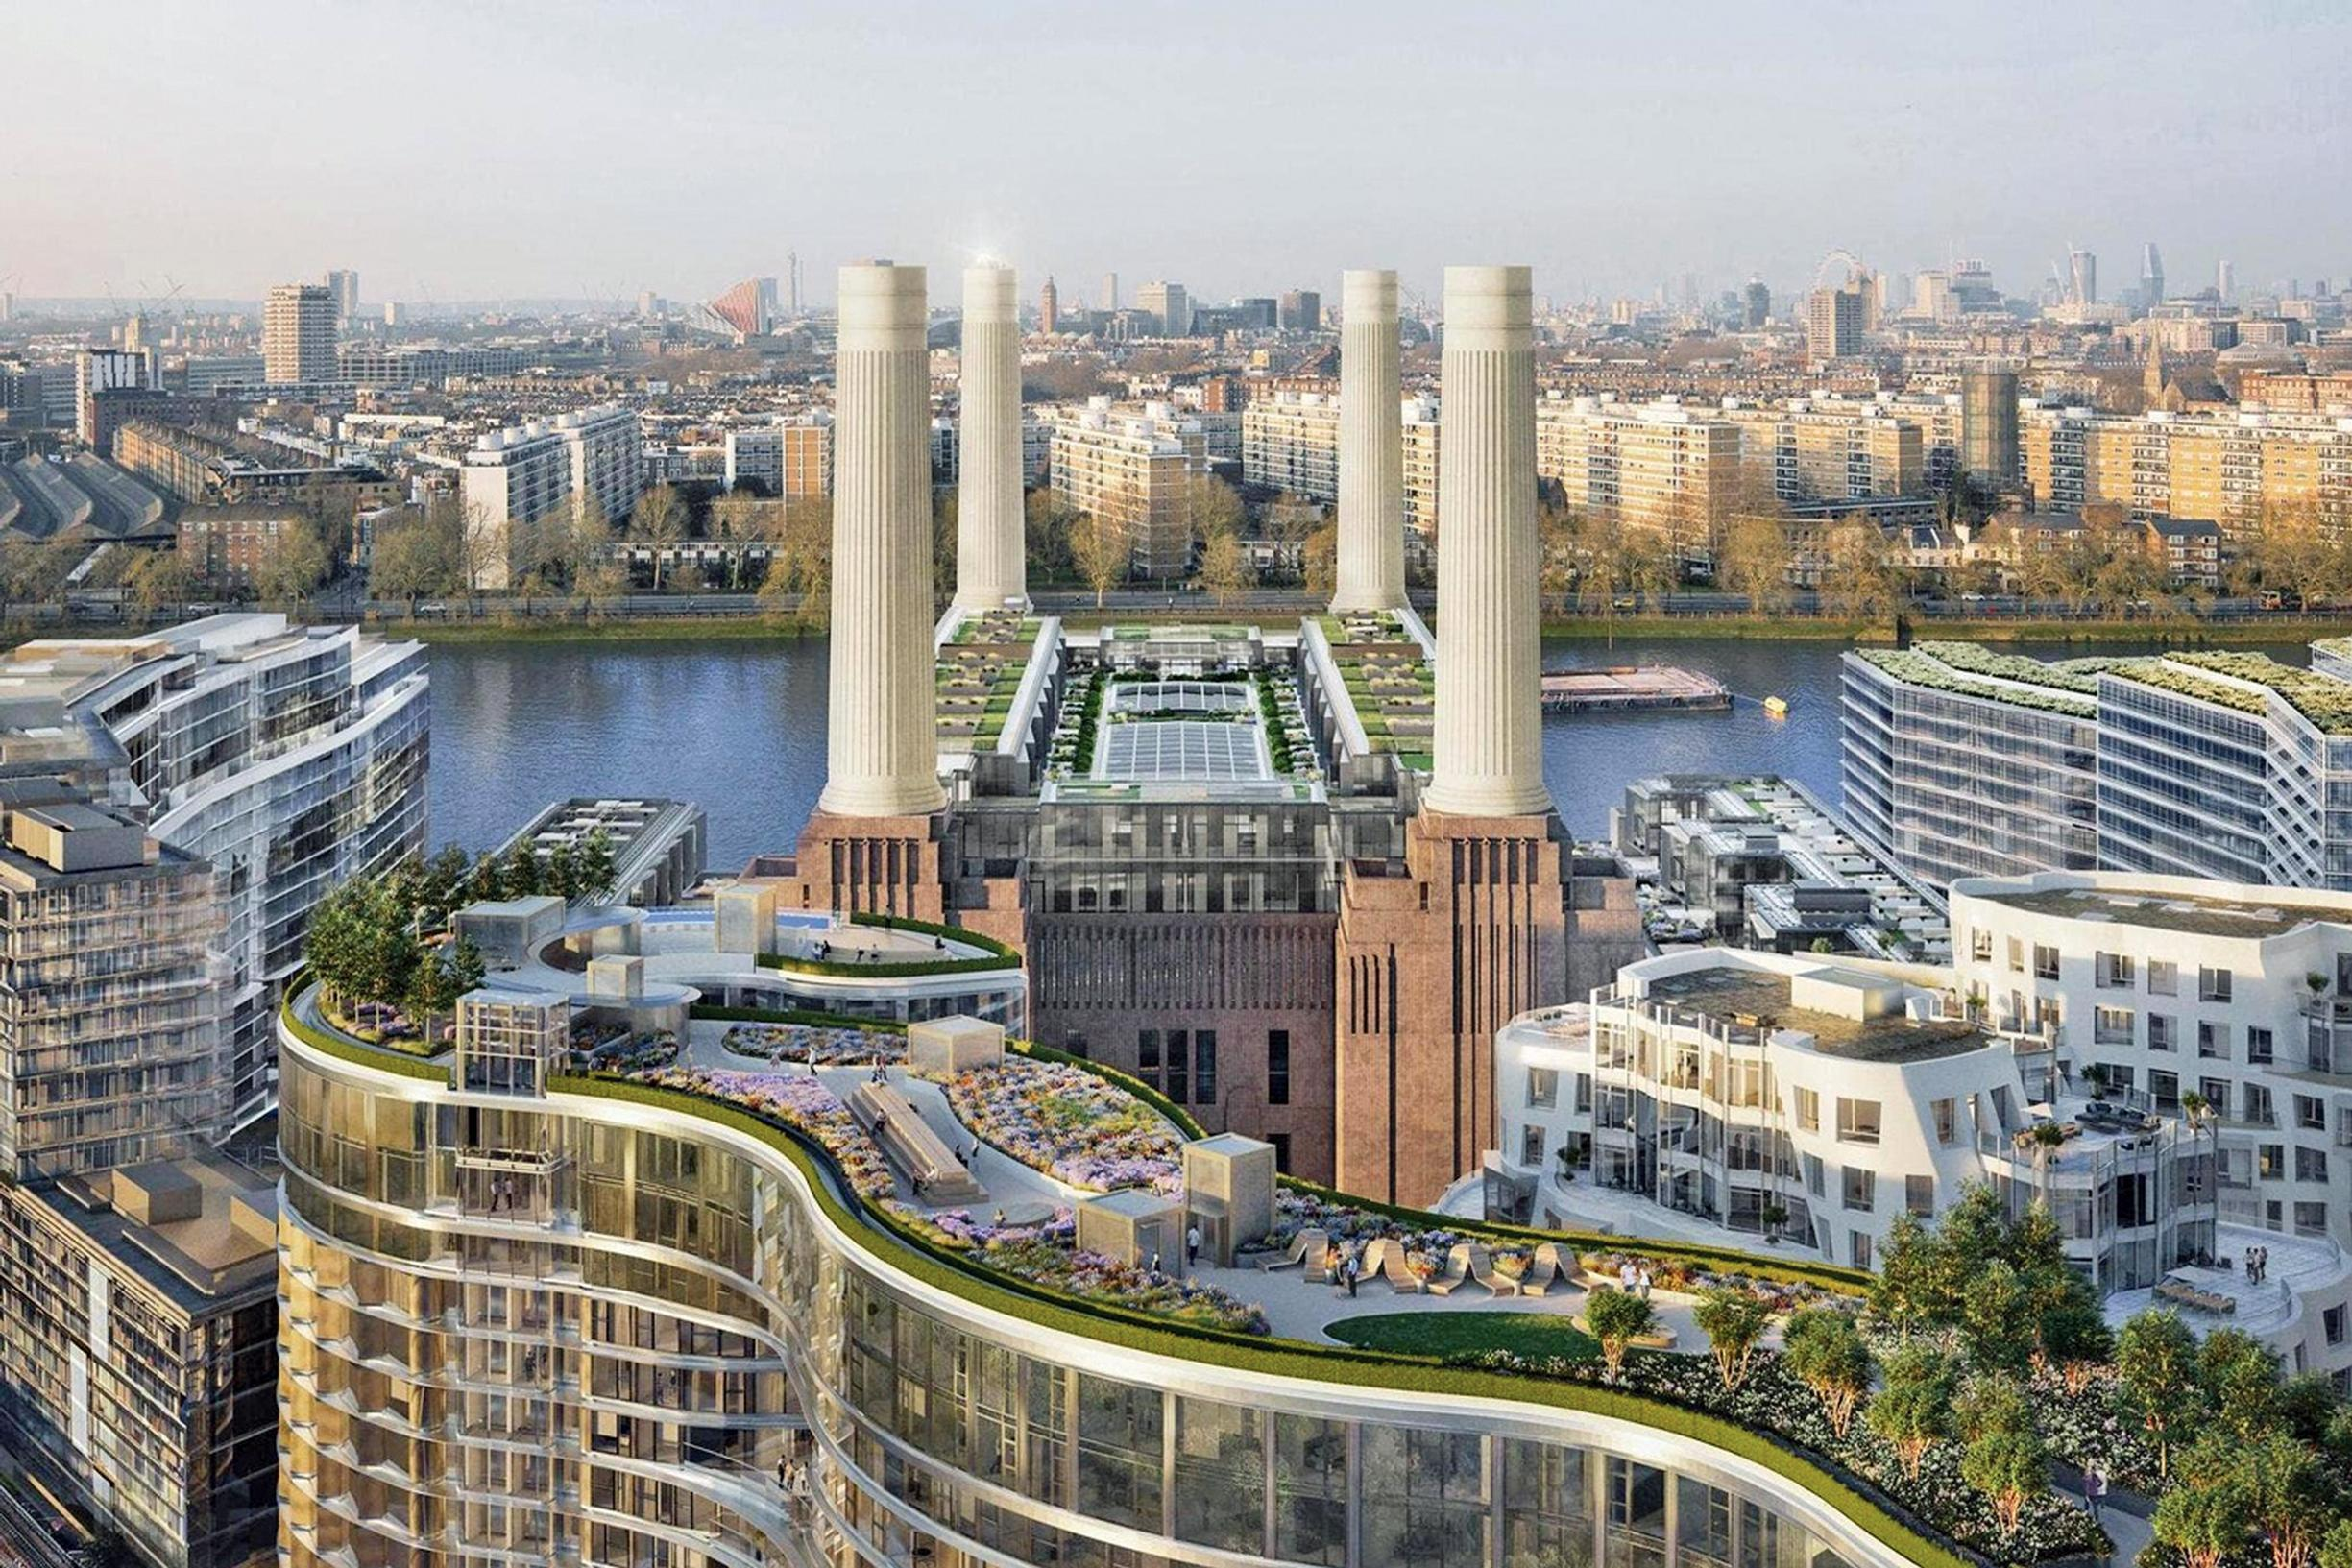 Battersea Power Station development: too much car parking